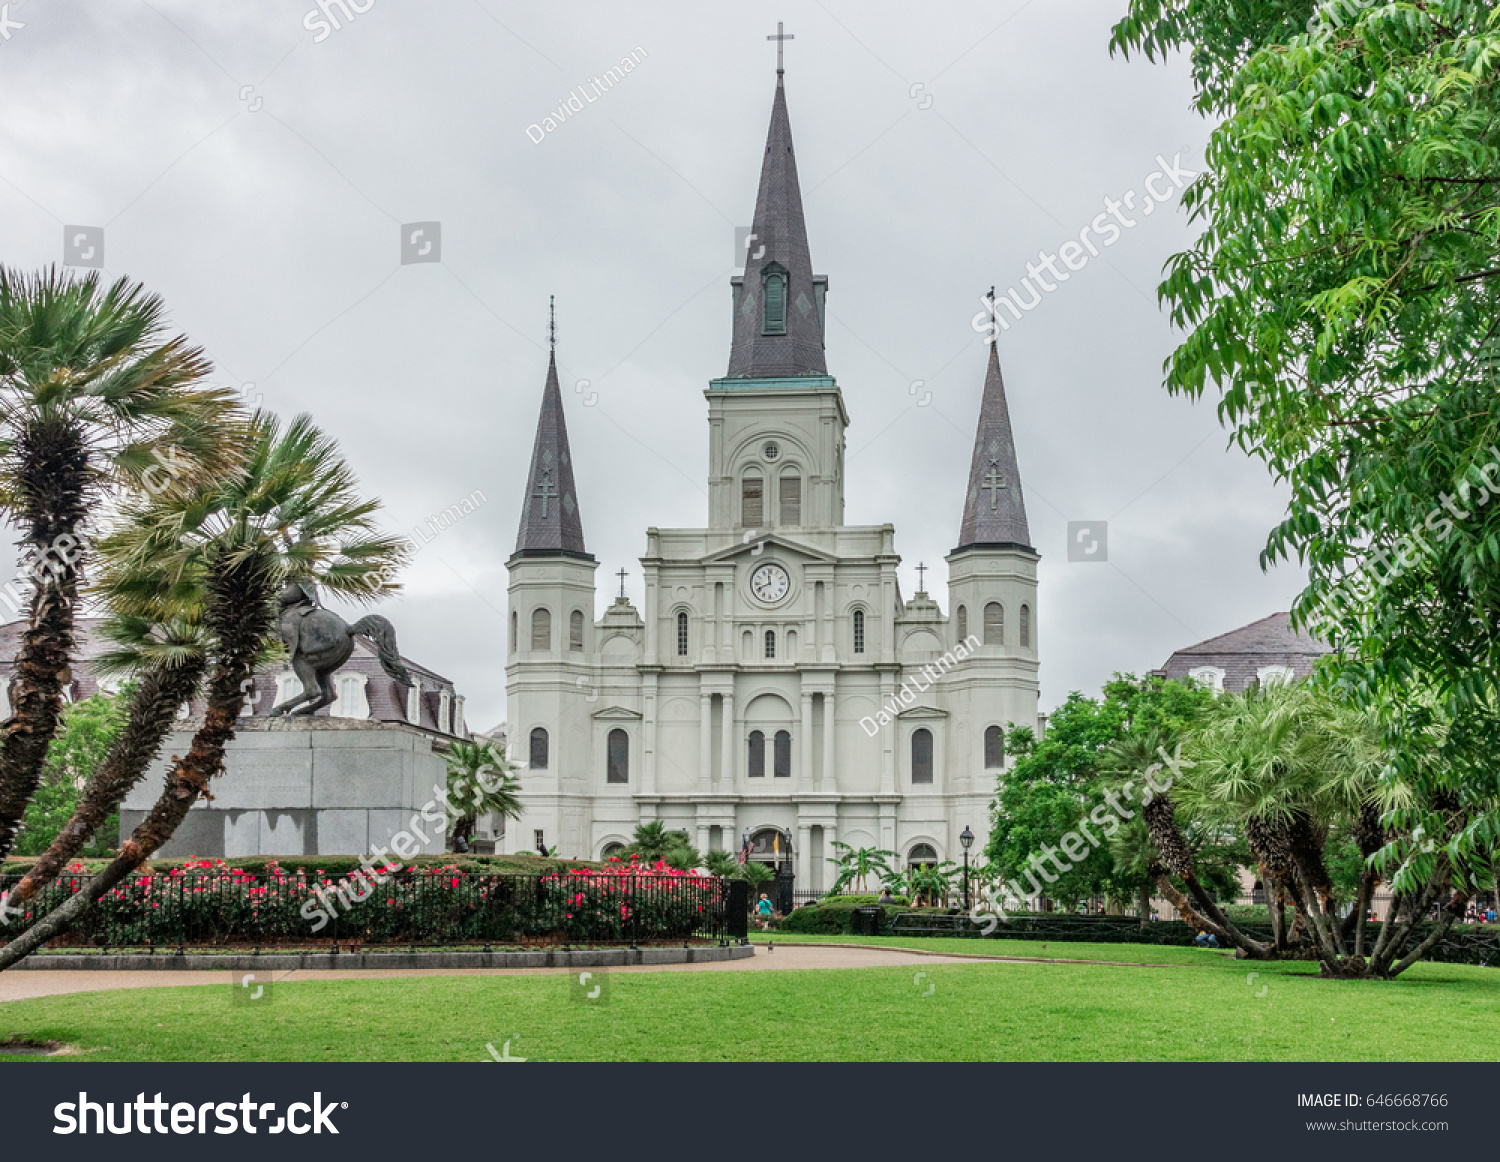 The Saint Louis Cathedral, at Jackson Square historic park in the French Quarter of New Orleans in Louisiana.